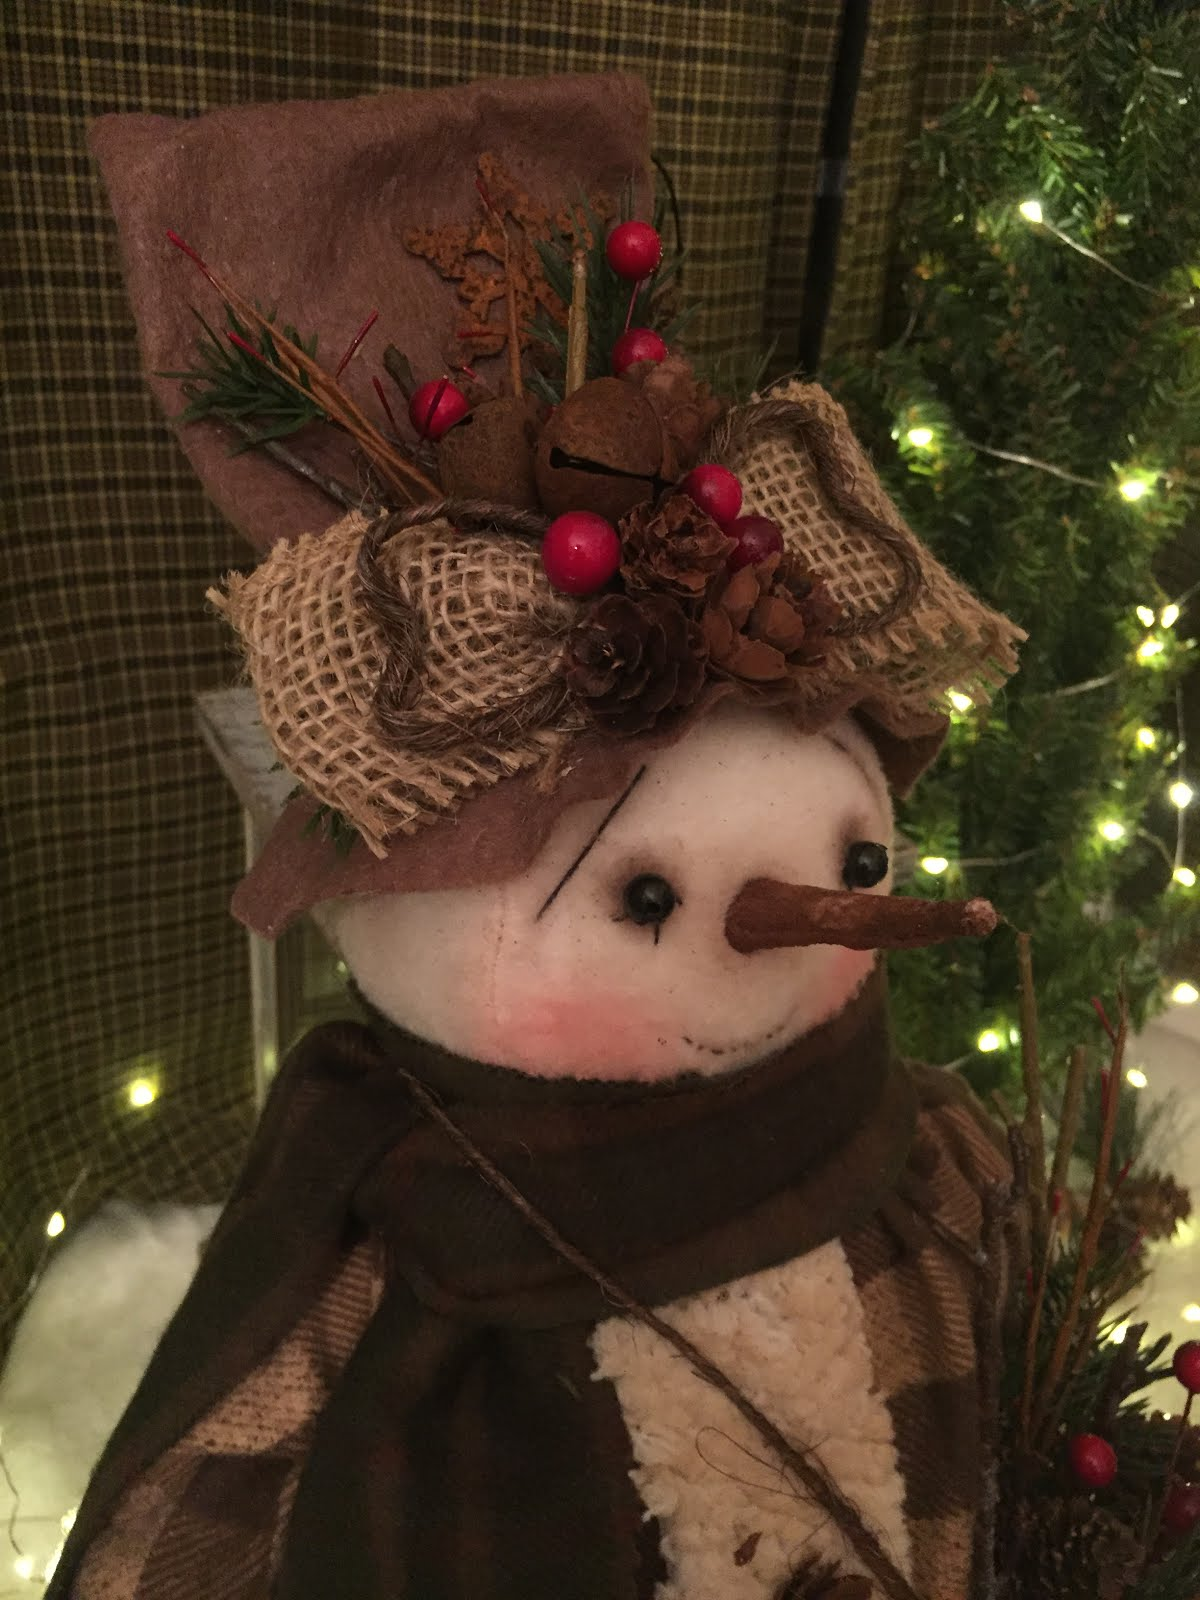 Handmade Primitive Standing Snowman With Burlap Sack And Ornament